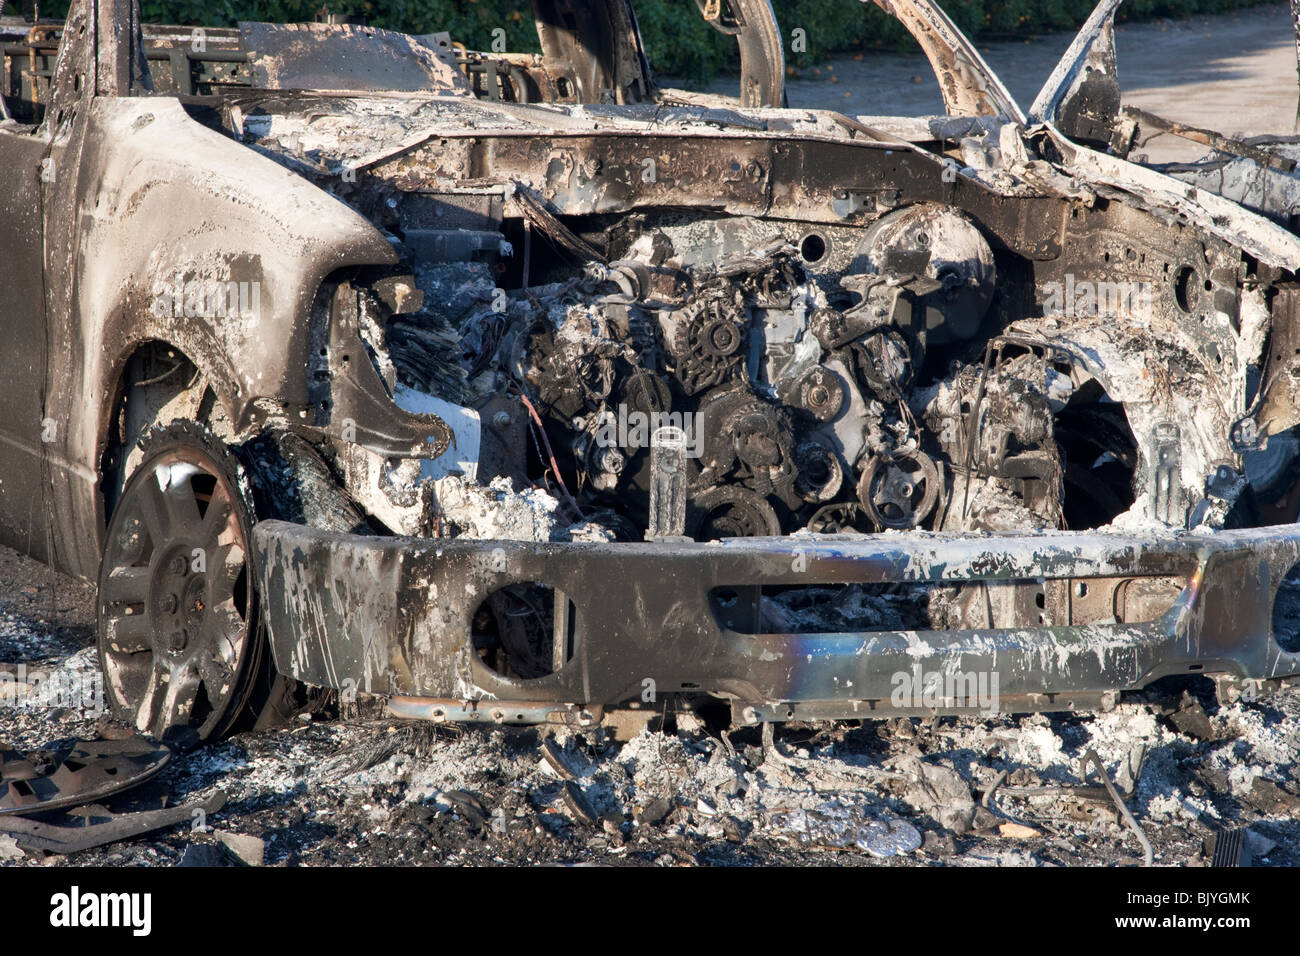 Engine, torched 'compact' pickup. - Stock Image